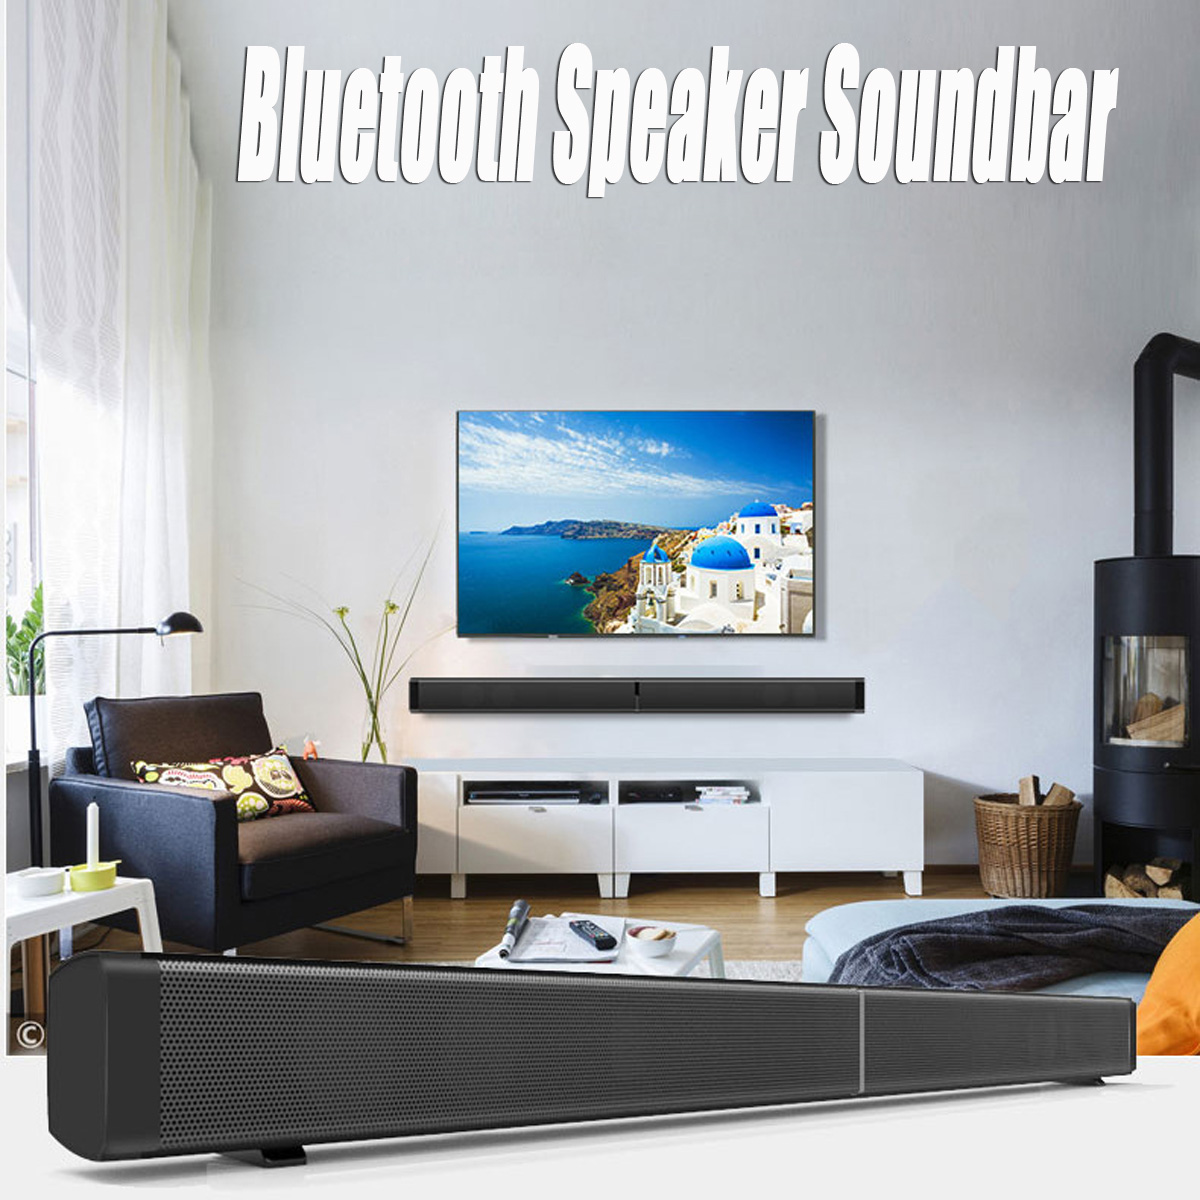 Sound Bar Home Theater System Soundbar Bluetooth Speaker Soundbar Super Bass